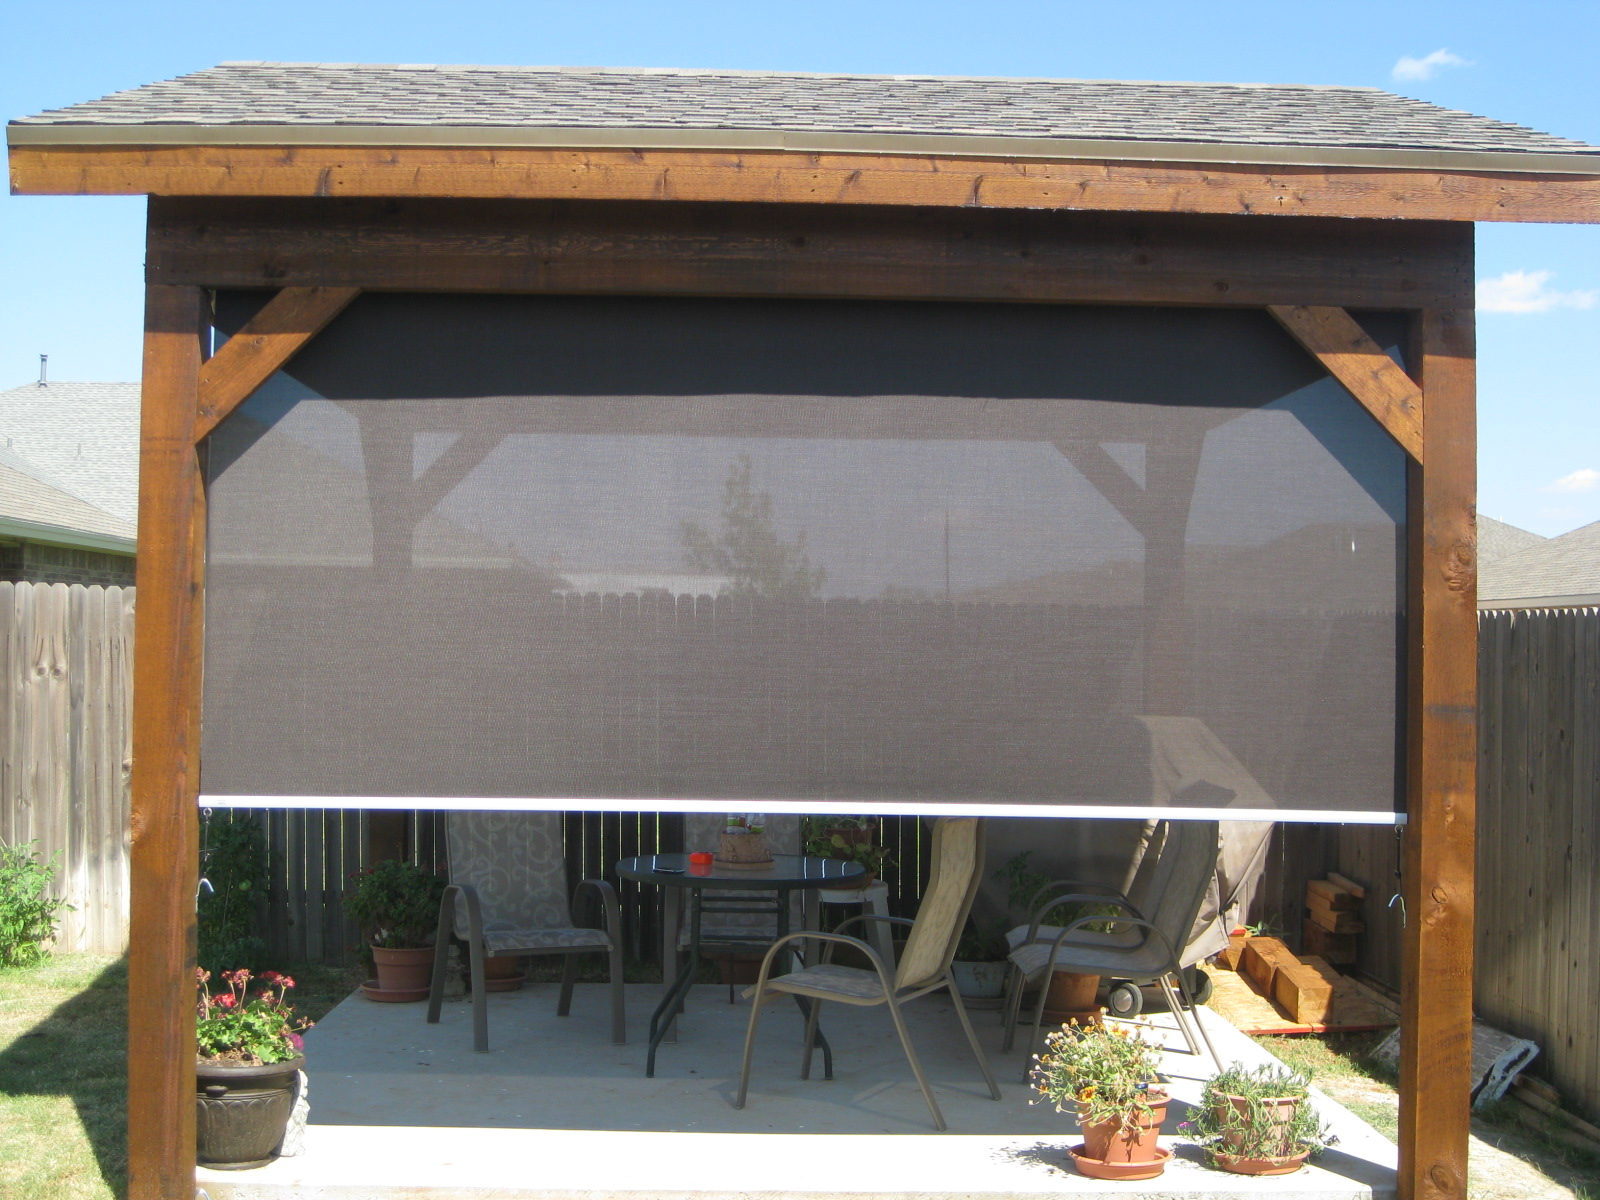 Tucson Patio Roller Shades - Keep Cool Without Blocking the Sun!